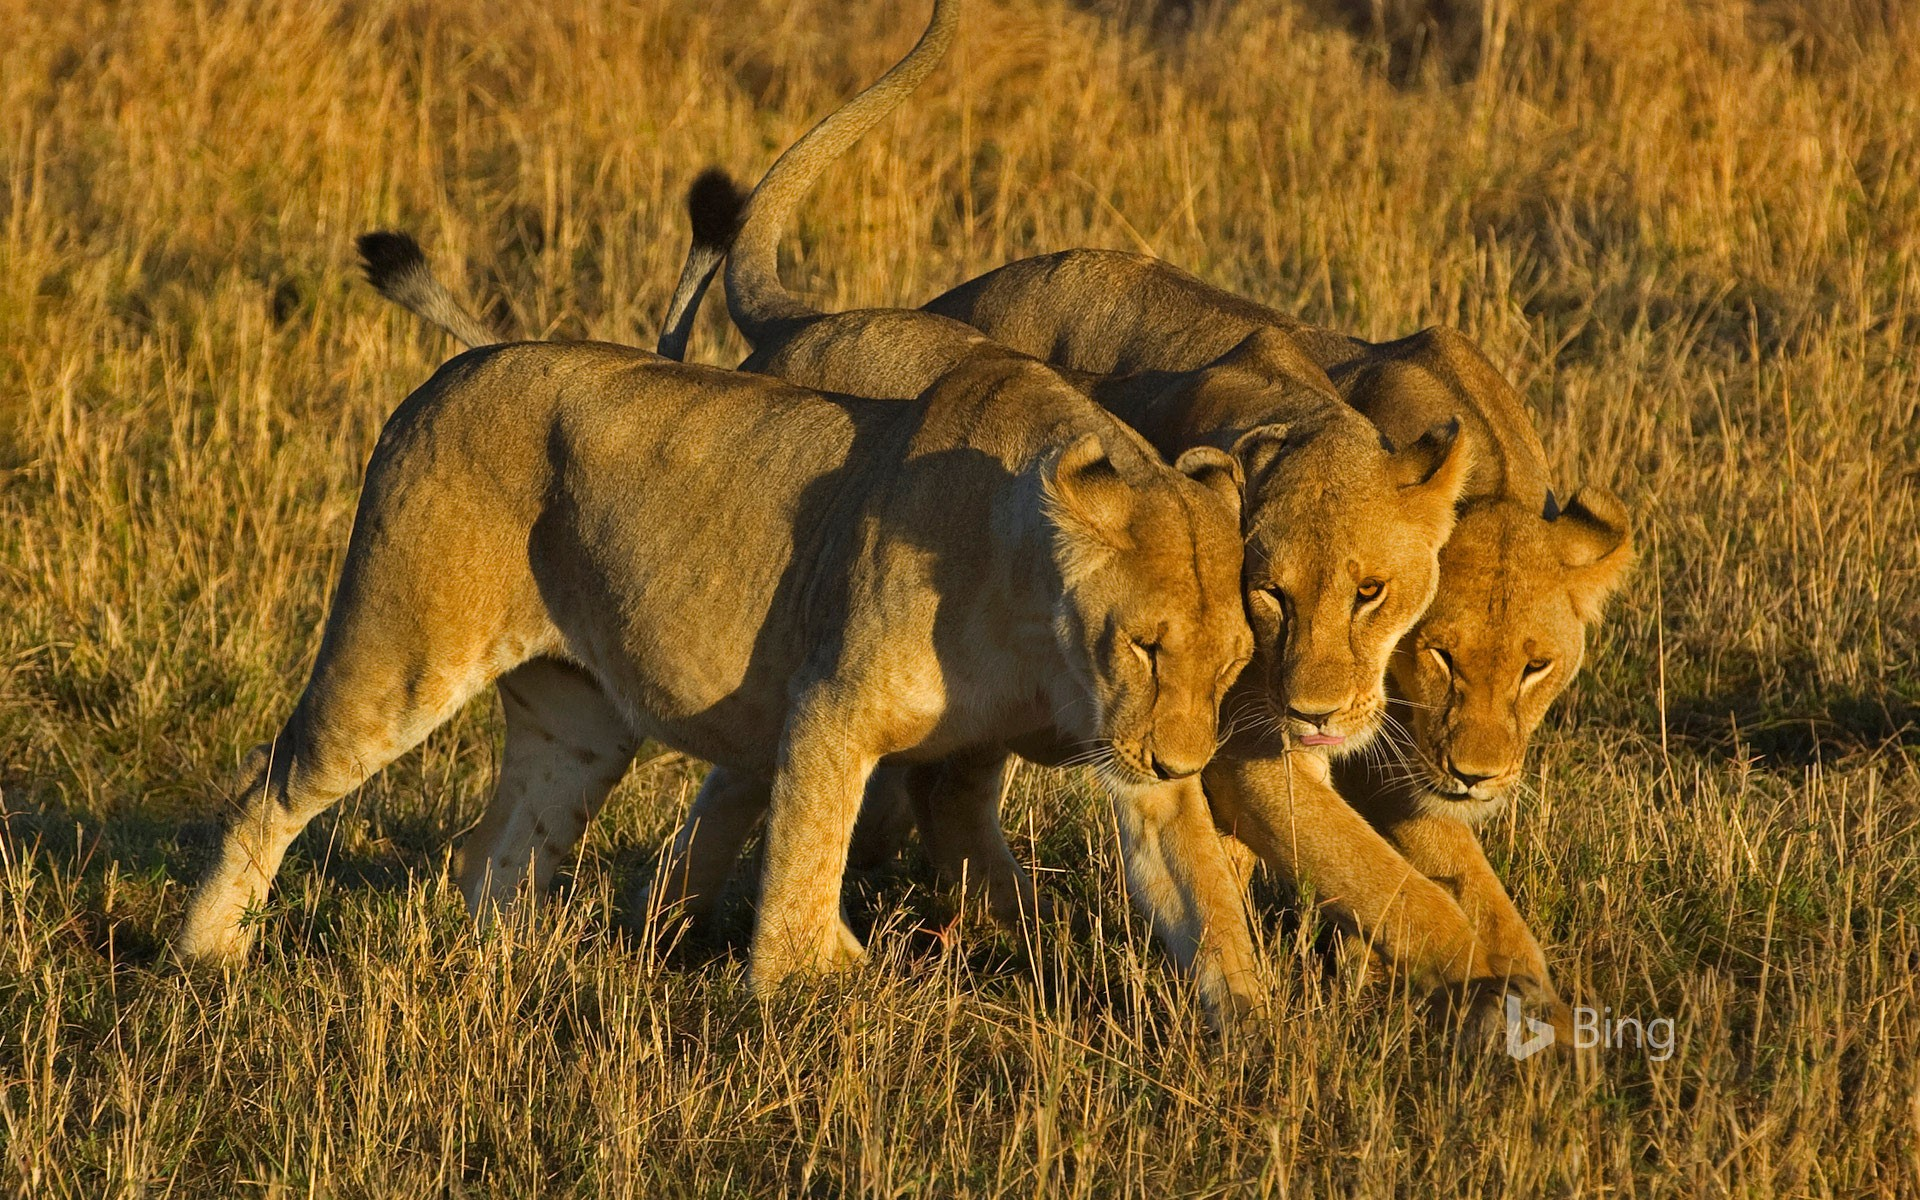 African lionesses in Masai Mara National Reserve, Kenya